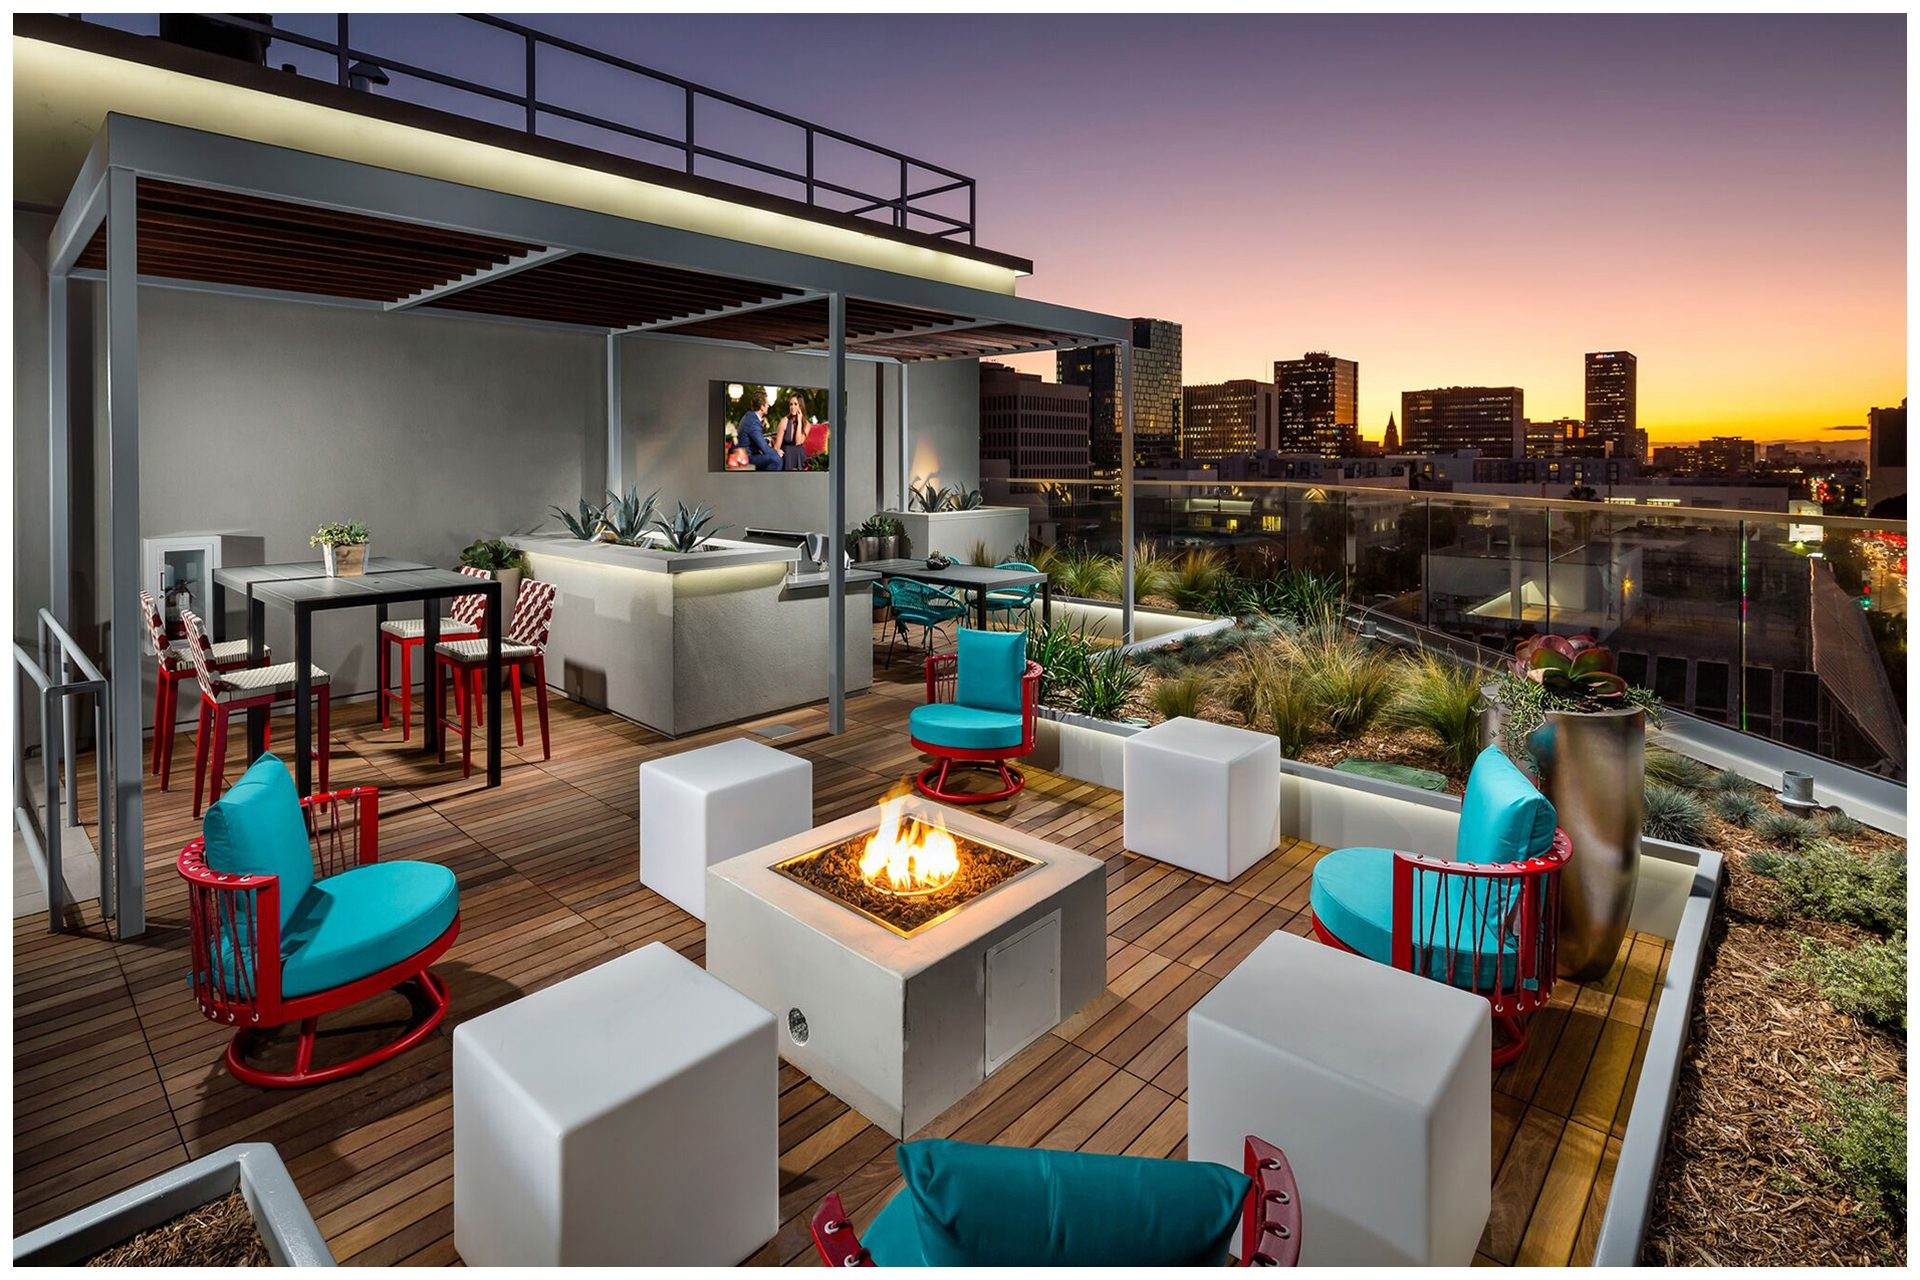 ROOFTOP/SKY DECK PROVISIONS Roof-top Audio & TV & WiFi; Audio Video provisions controlled via a nearby wall-mounted iPad and remotely from leasing office.